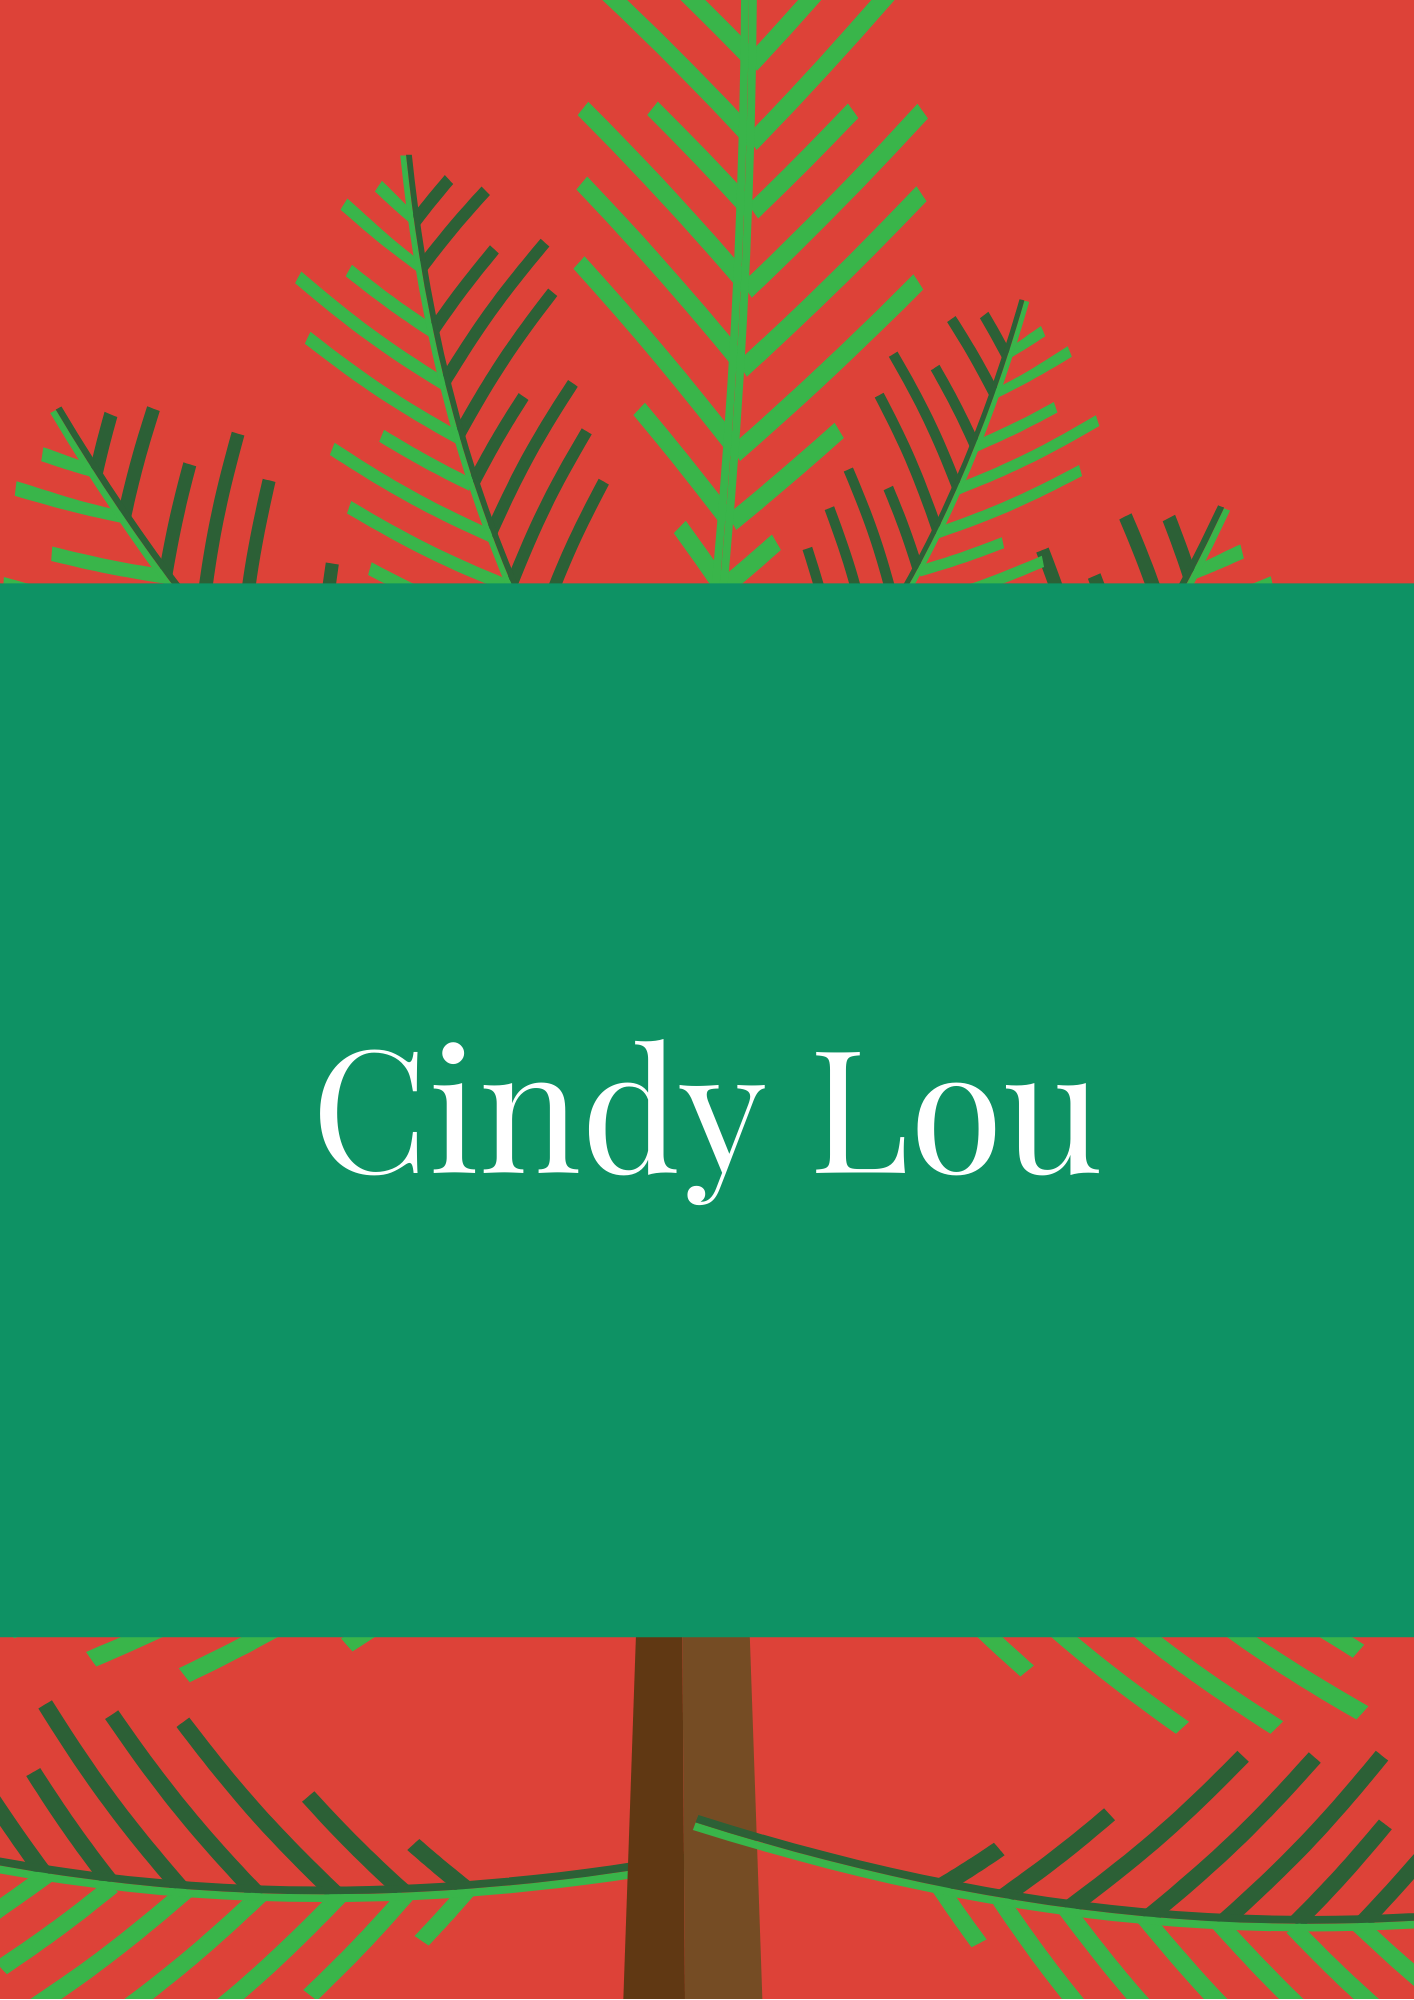 Cindy Lou Elf Names